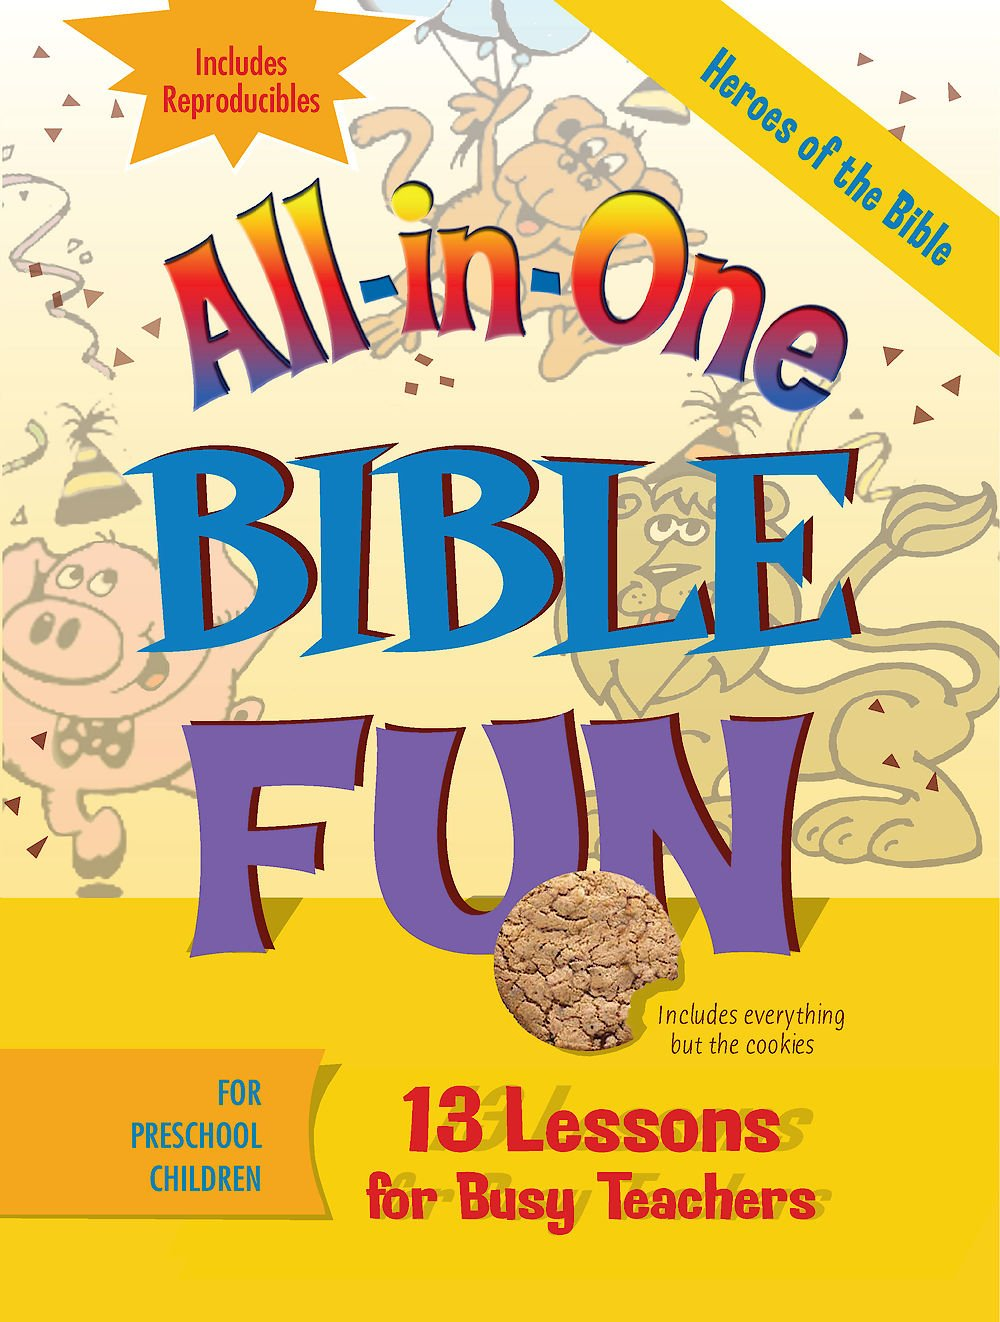 All-in-One Bible Fun for Preschool Children: Heroes of the Bible: 13 Lessons for Busy Teachers ebook